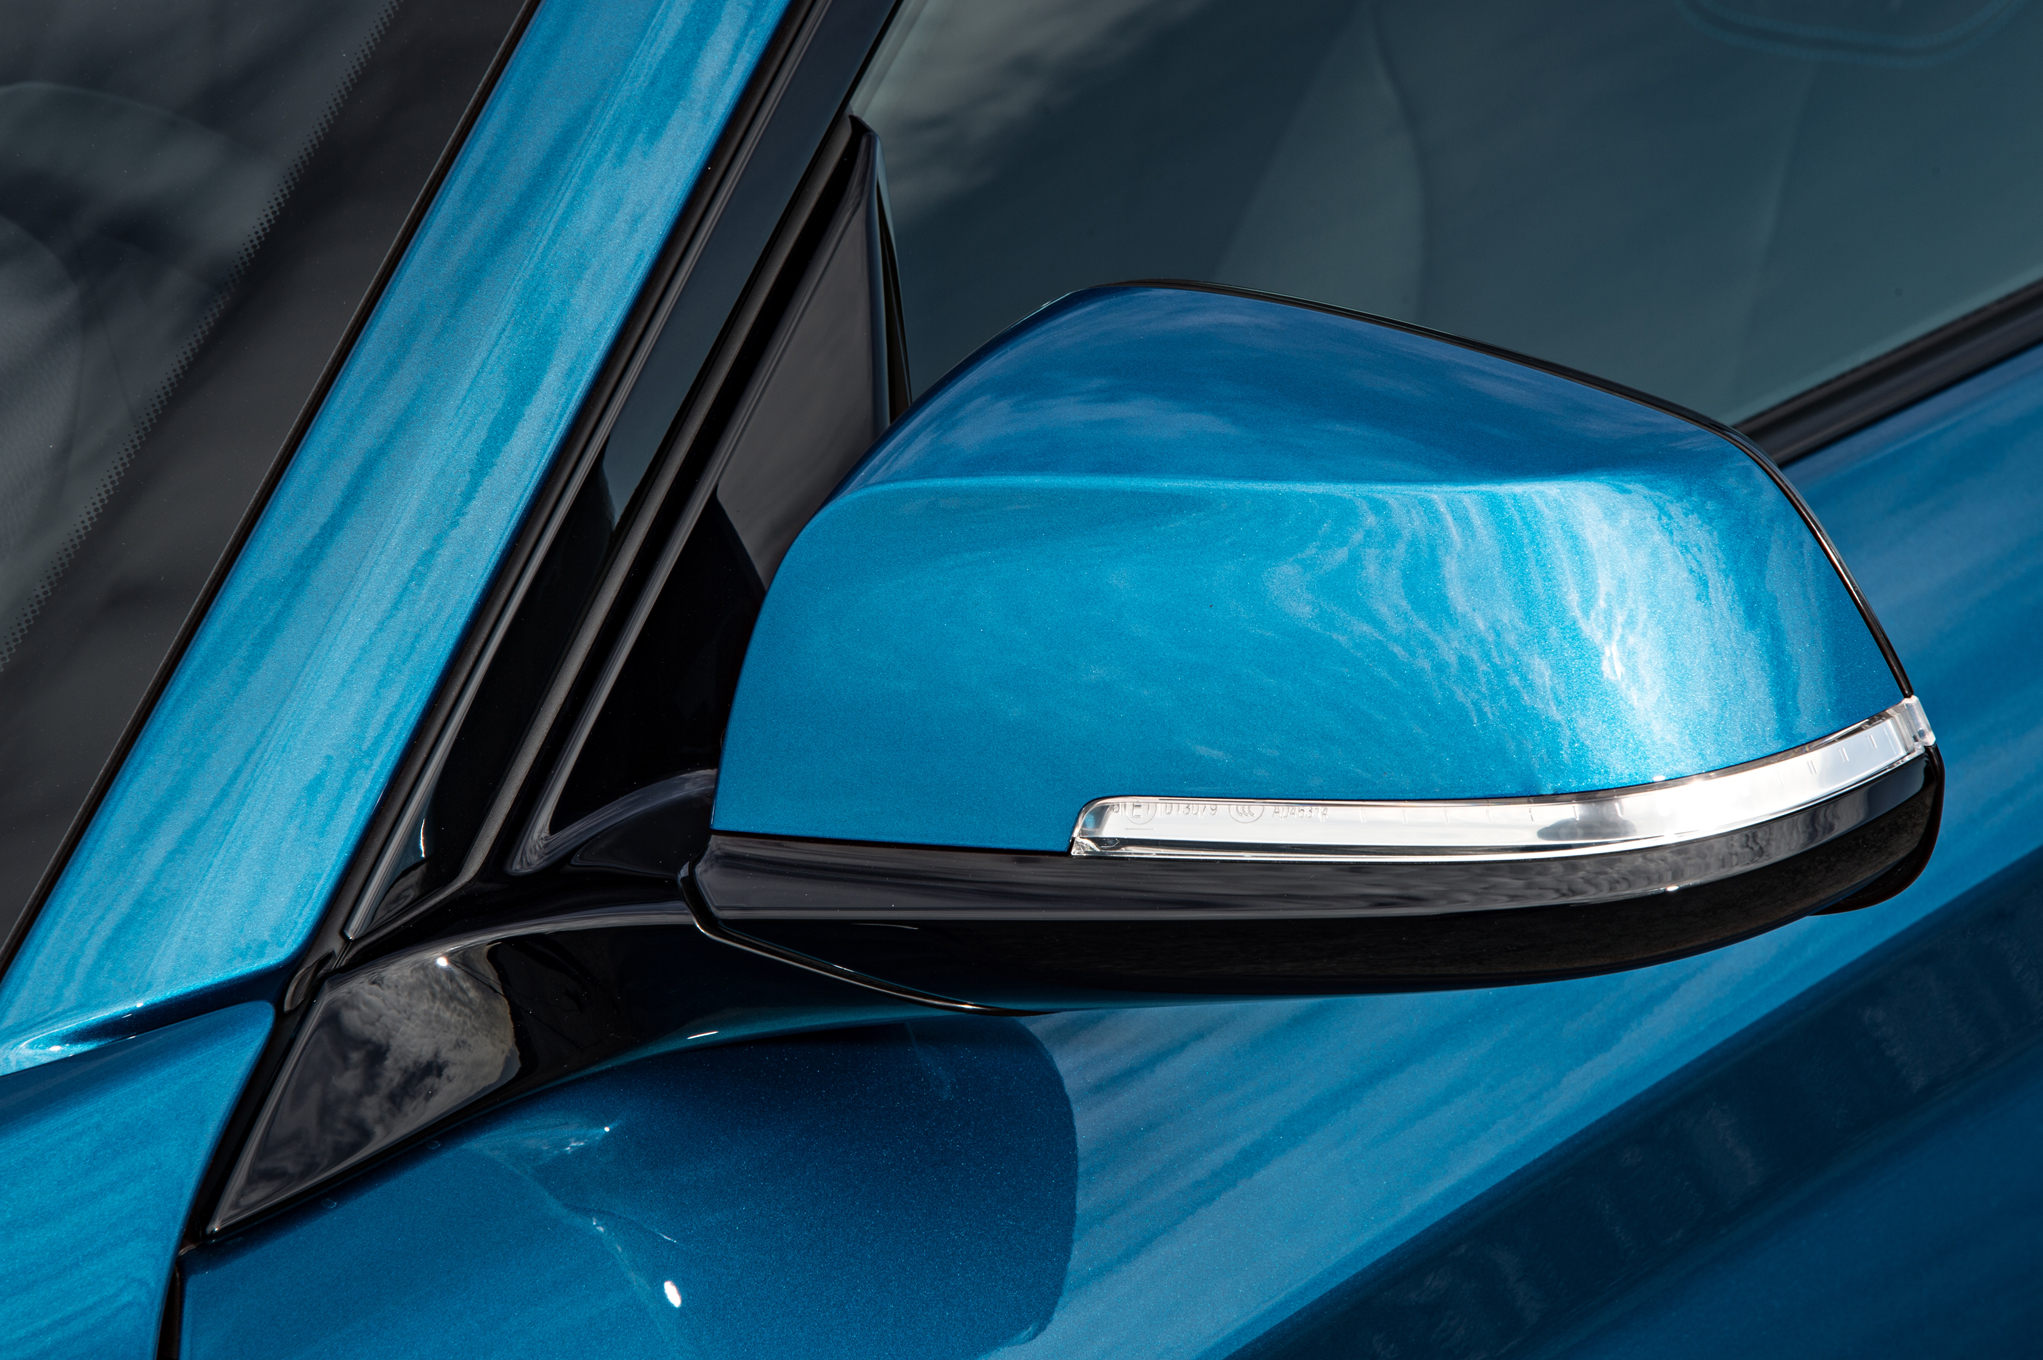 2016 BMW M2 Exterior View Side Mirror (View 34 of 61)